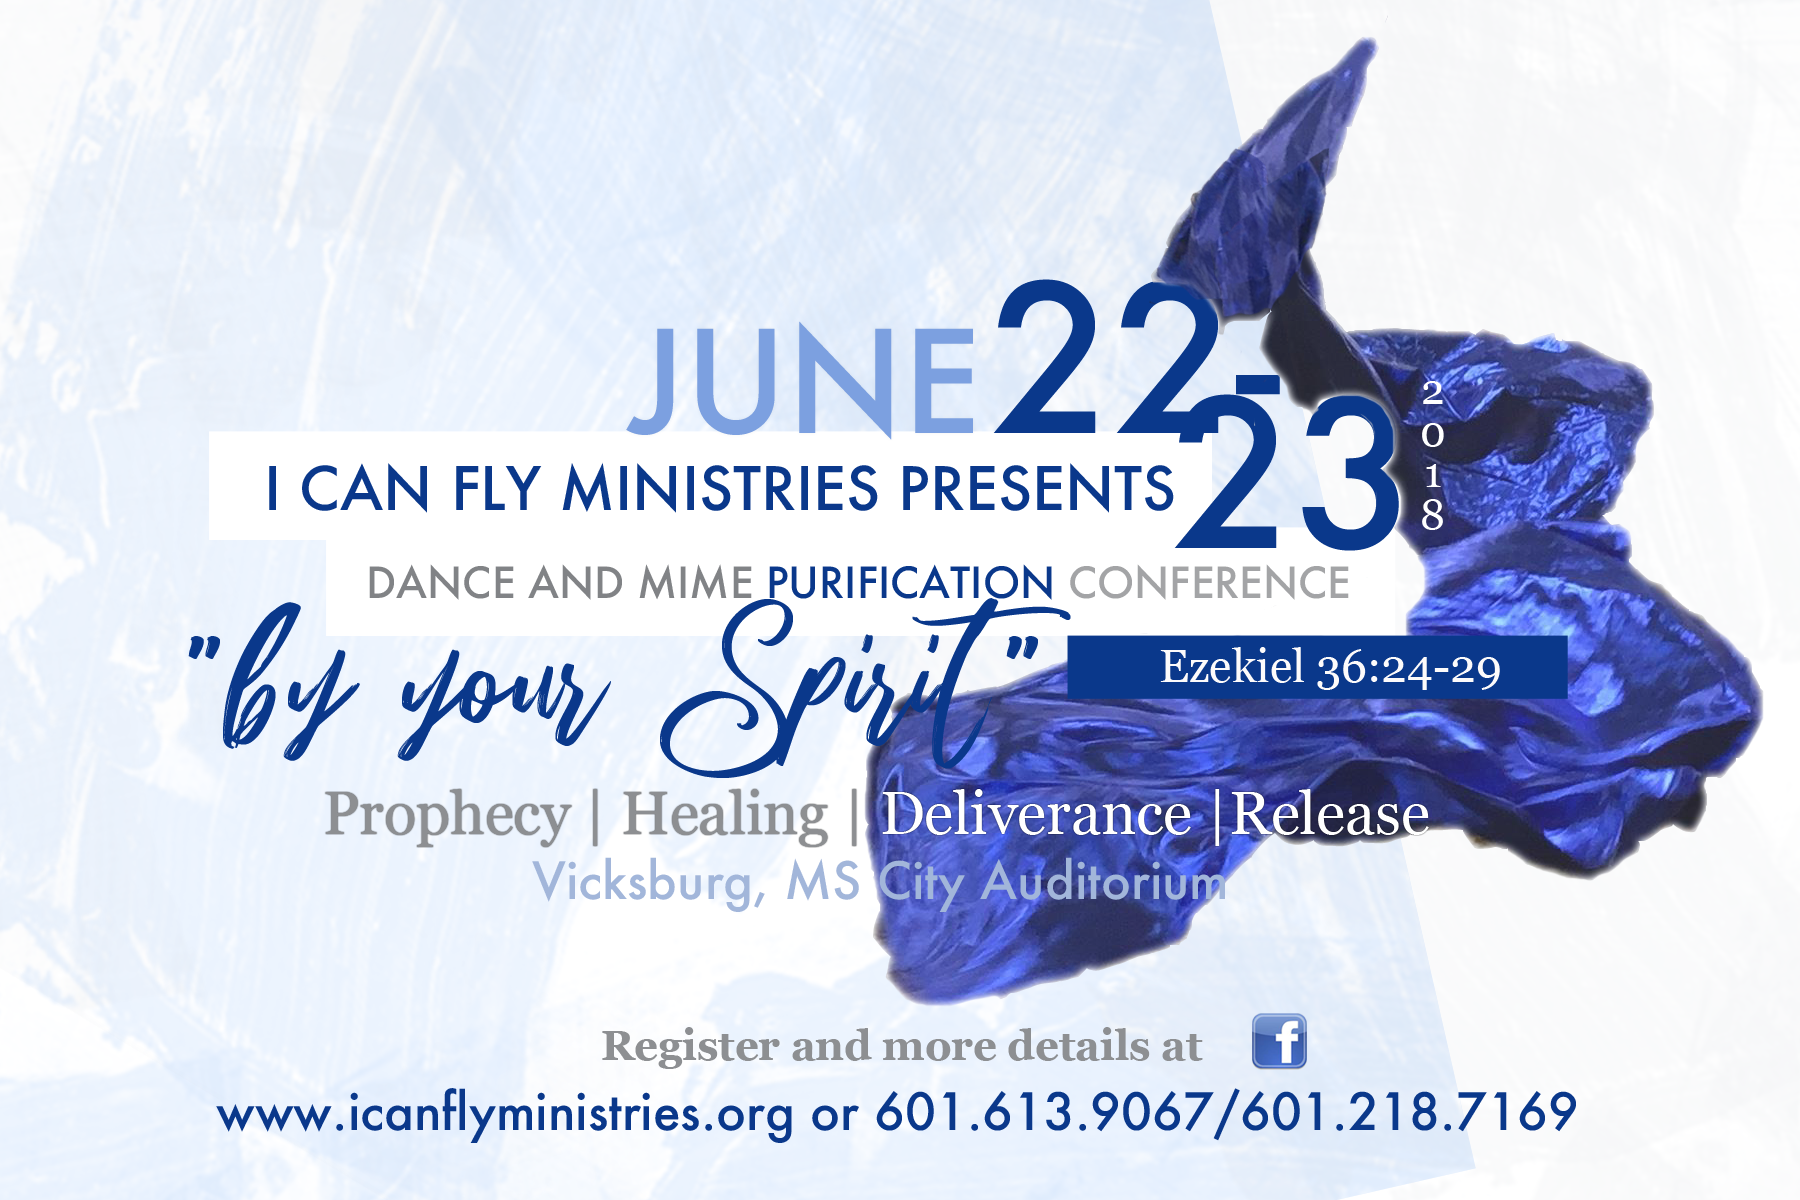 REGISTER TODAY! - LEARN MORE DETAILS ABOUT THE 2018 CONFERENCE & REGISTRATION.